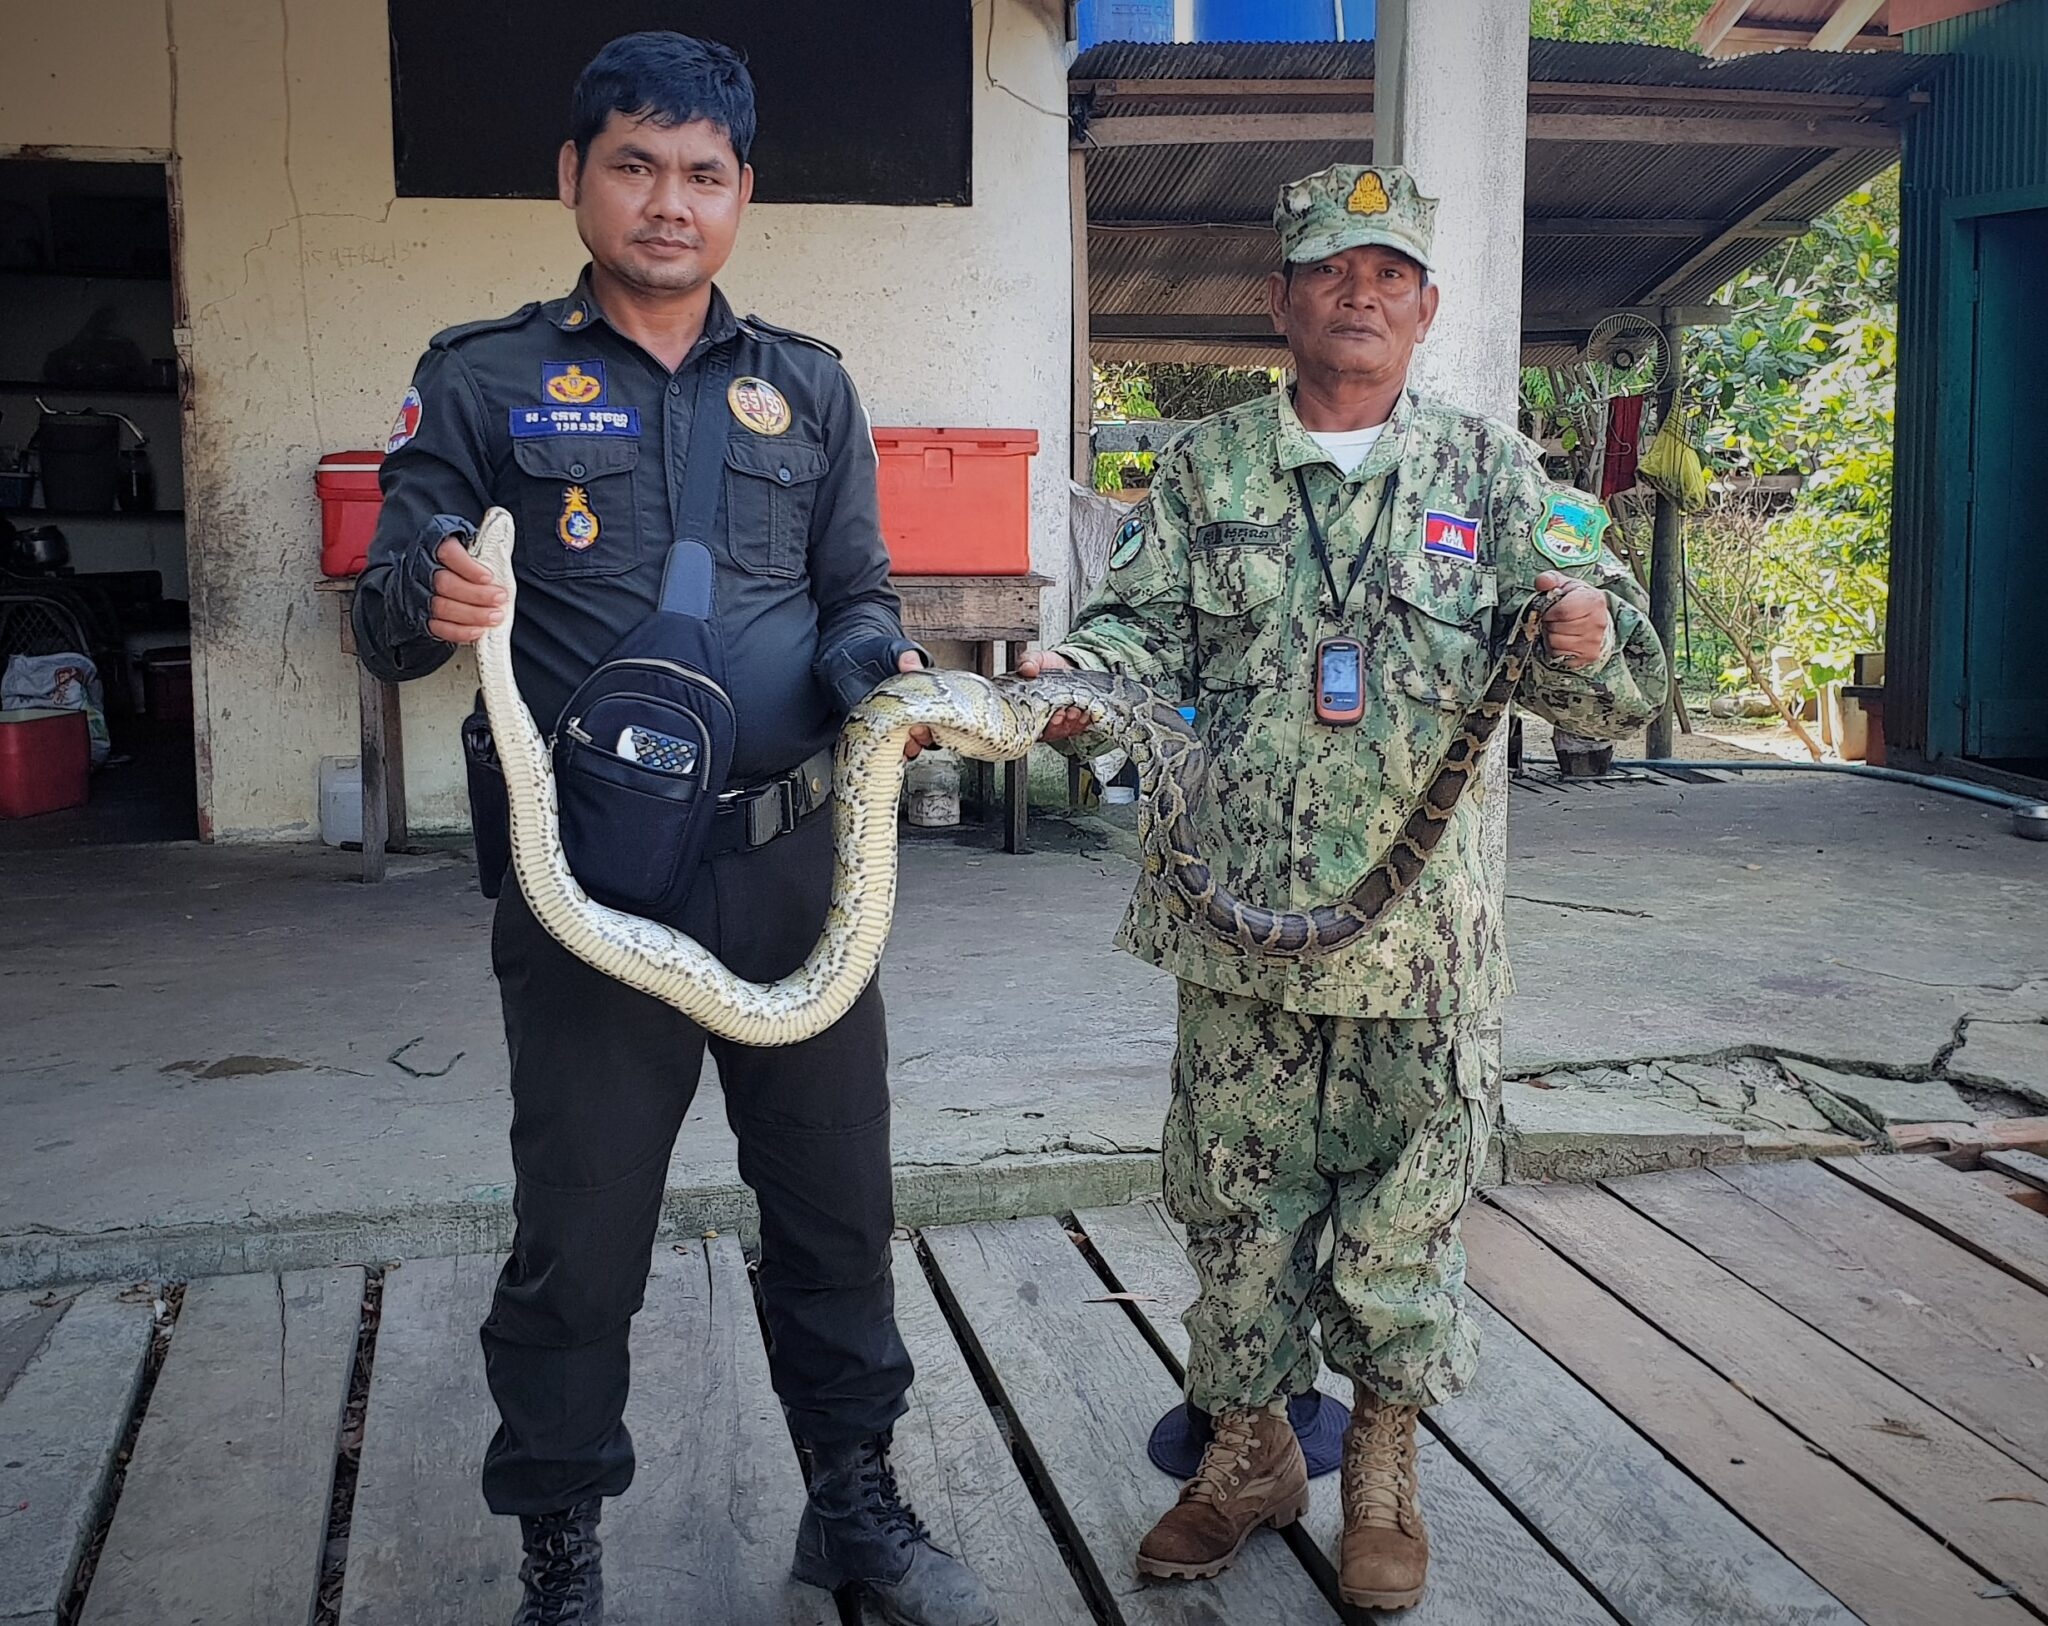 Reticulated python, world's longest snake Reticulated python Cambodia